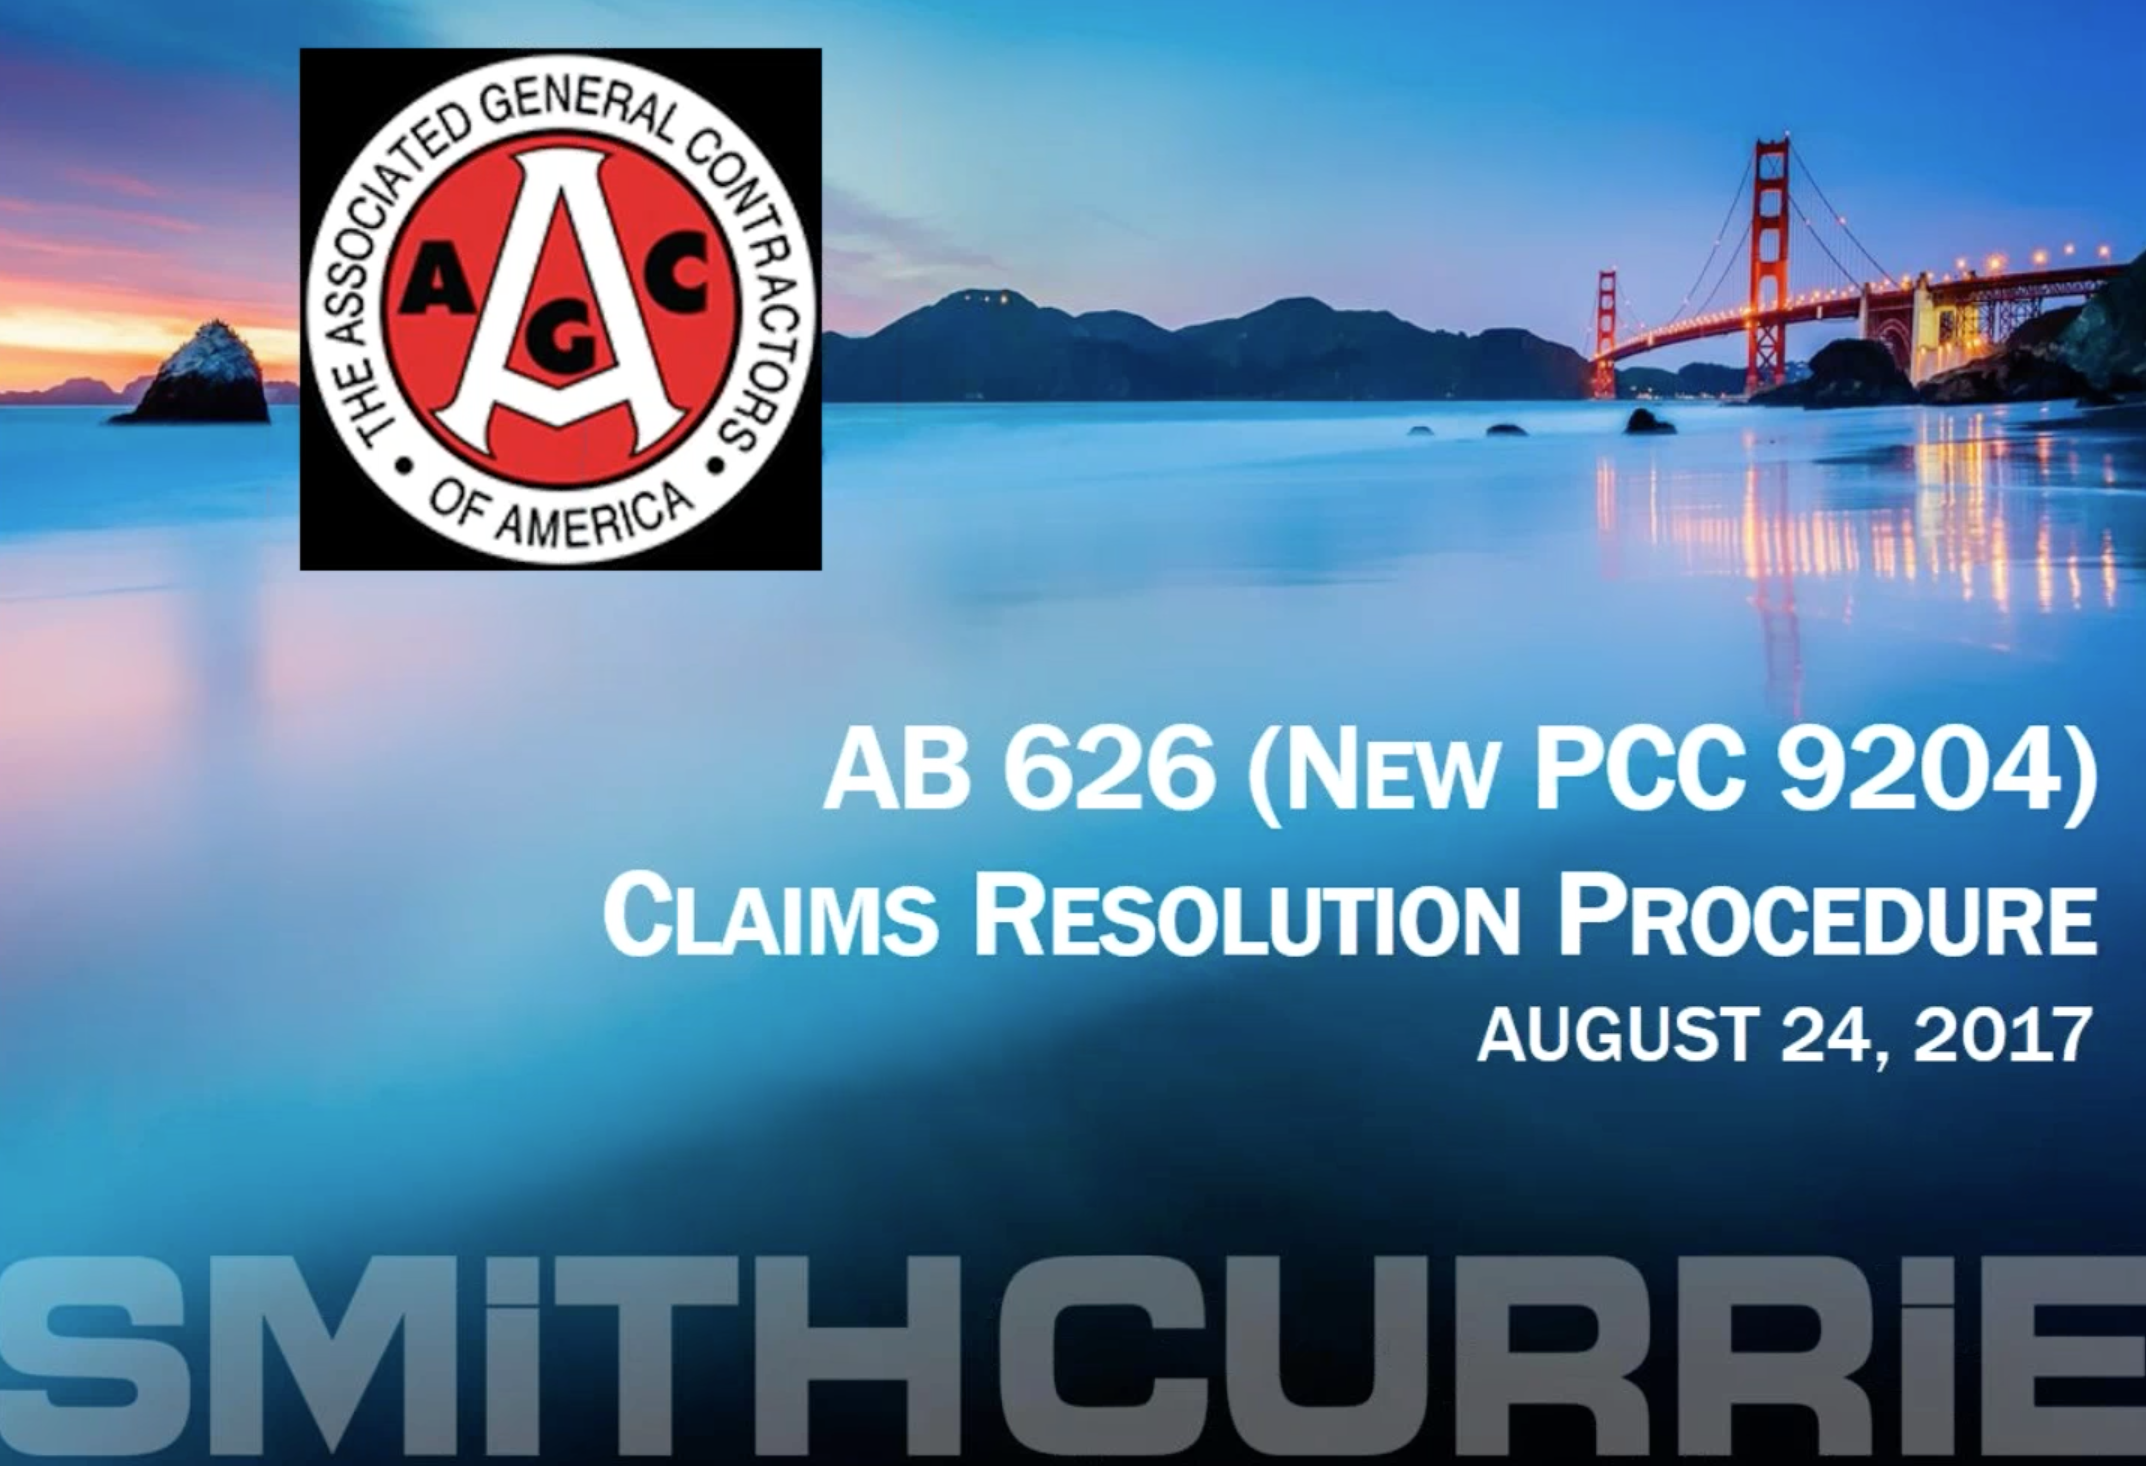 AB 626 - Claims Resolution Procedure